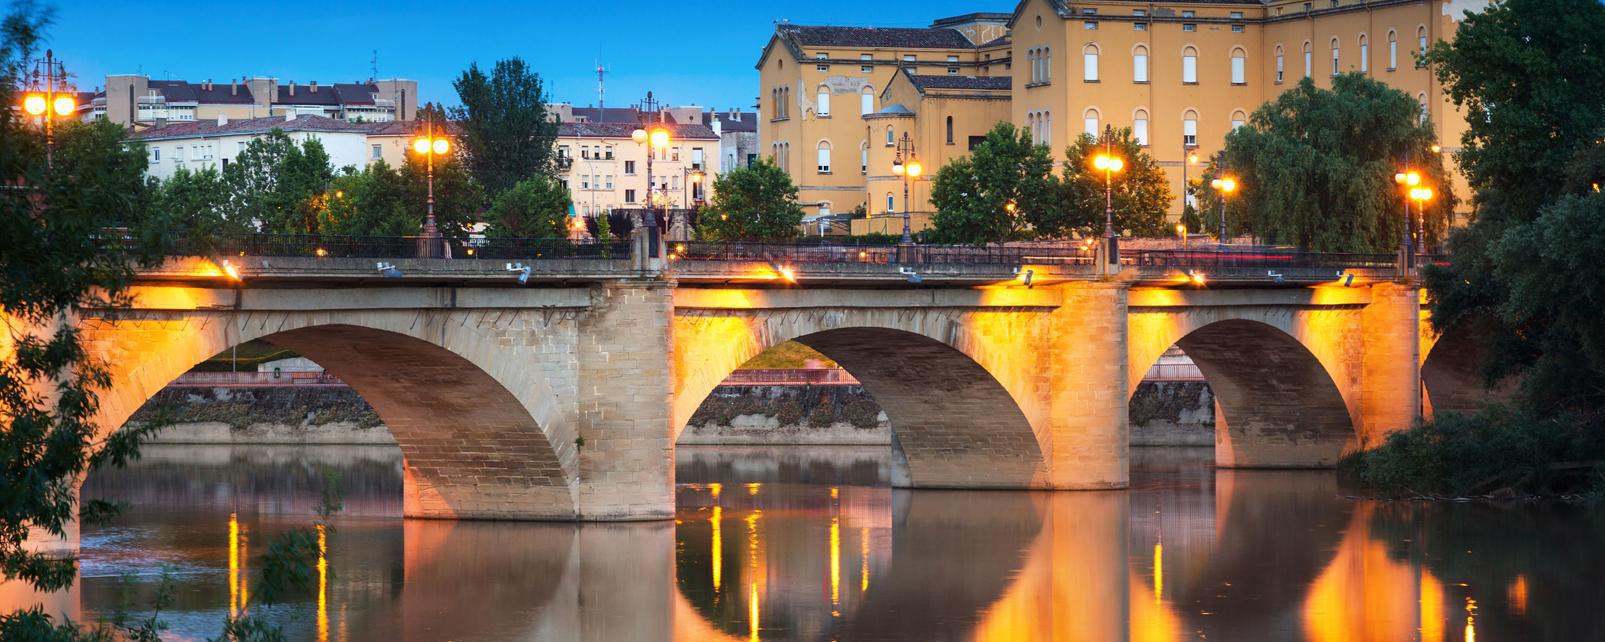 Hotels In Logrono Spain